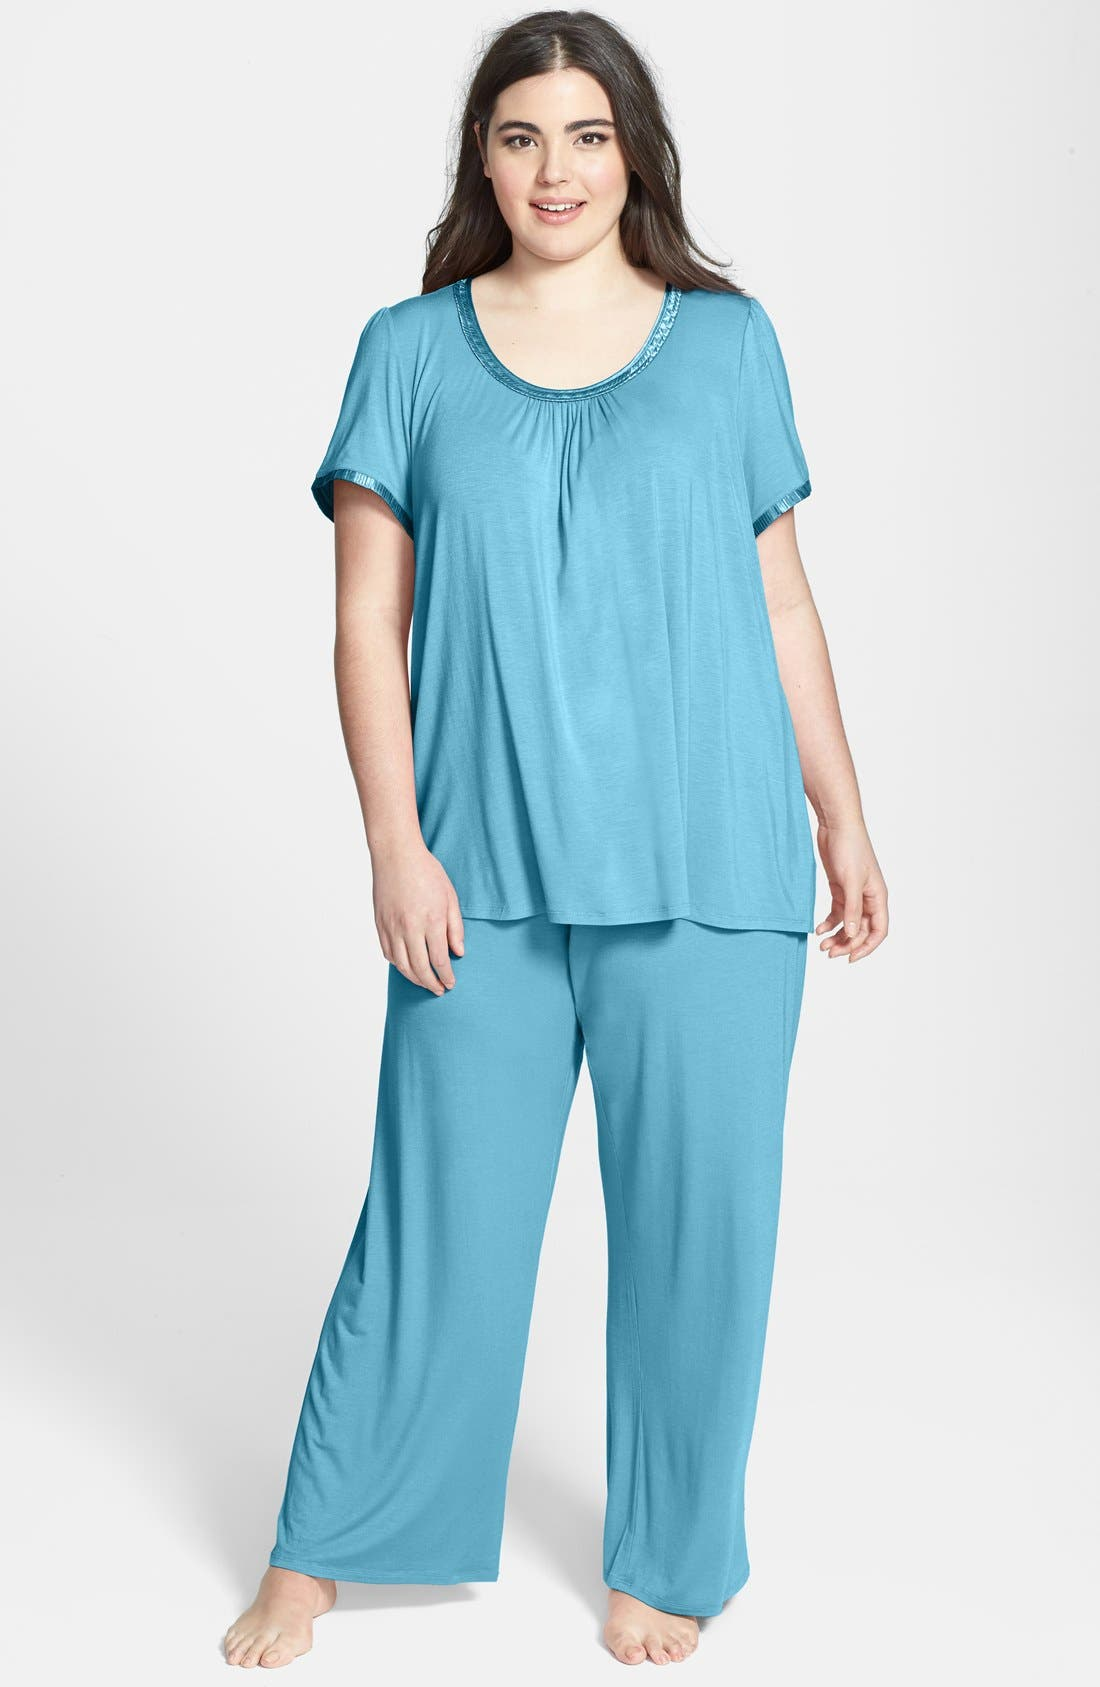 Alternate Image 1 Selected - Midnight by Carole Hochman 'Magic Moment' Pajamas (Plus Size)